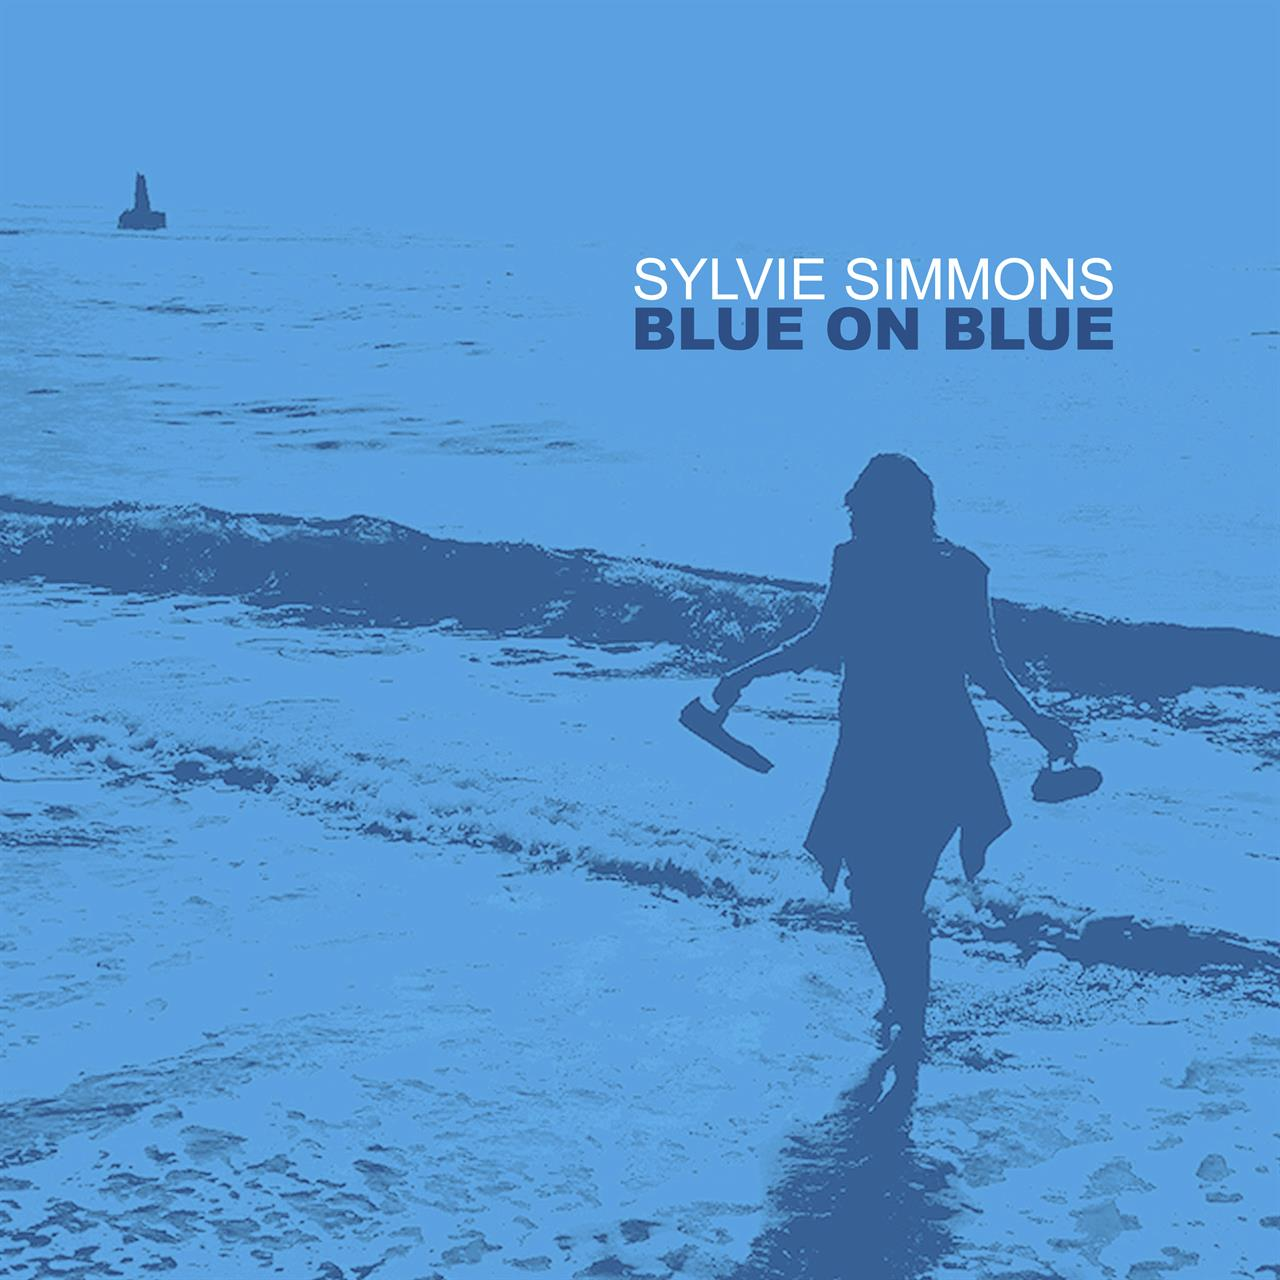 Review: Music writer Sylvie Simmons' 2nd album also a charm